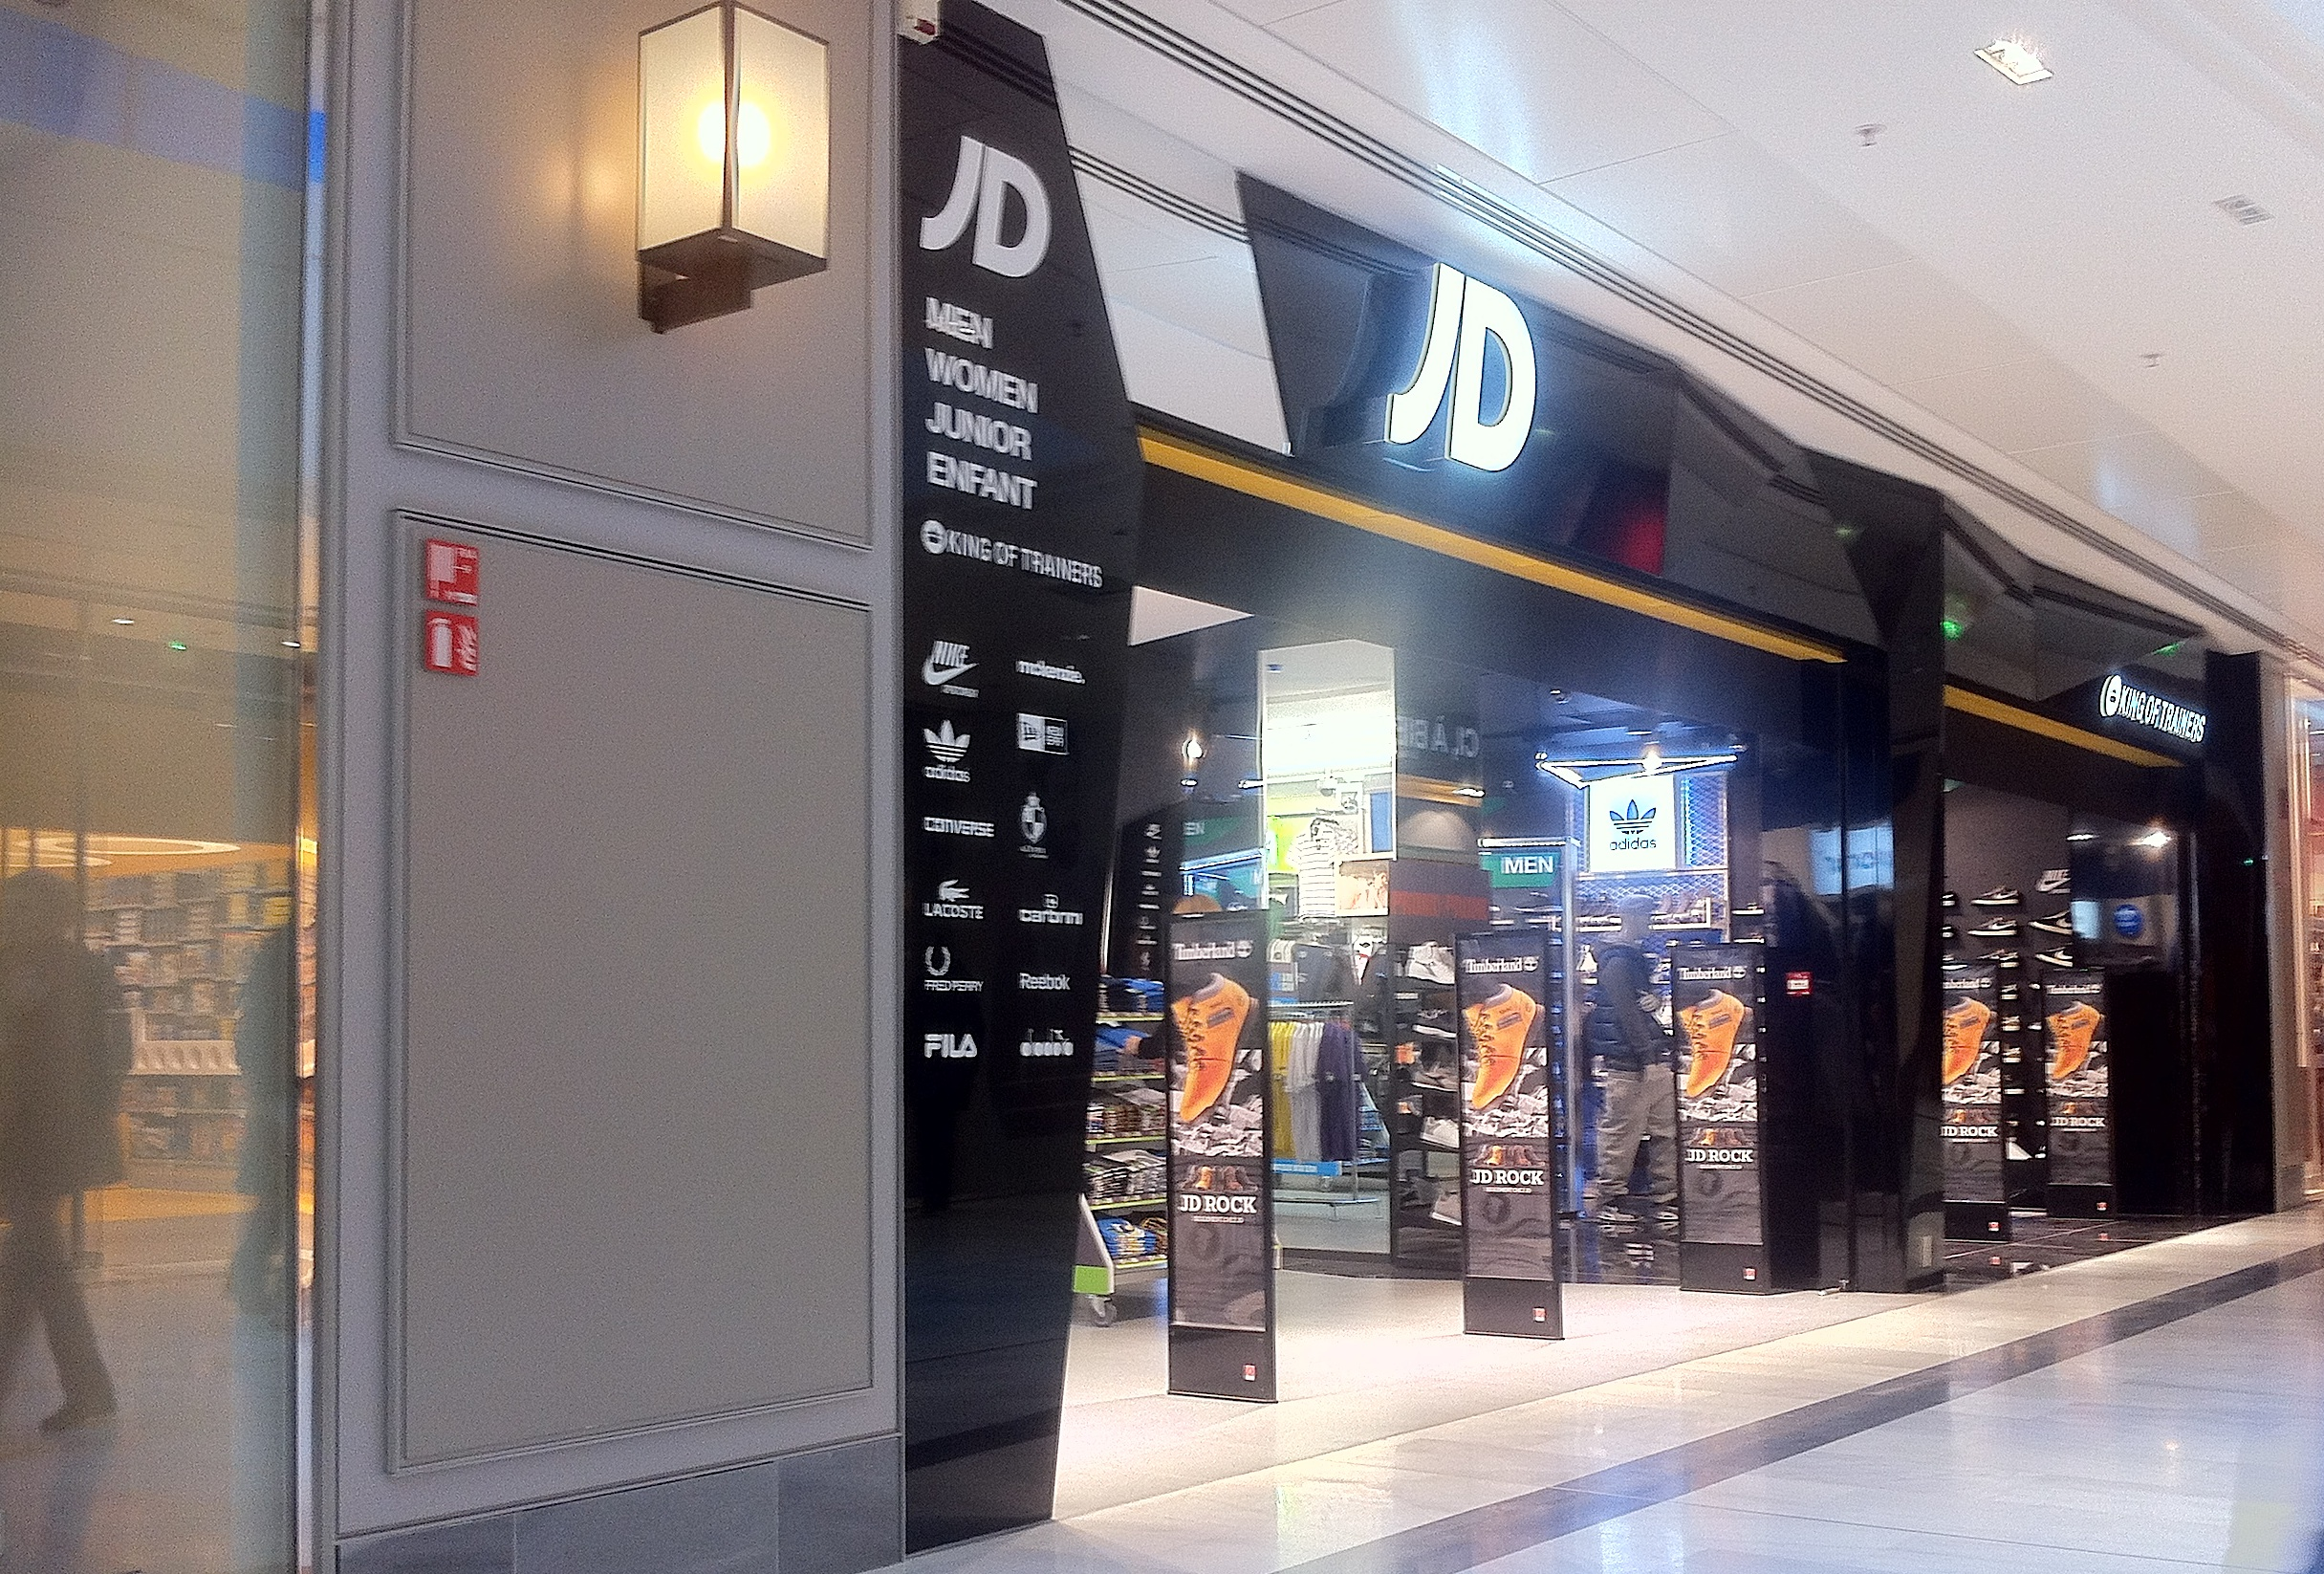 jd sports ouvrira dans le centre la toison. Black Bedroom Furniture Sets. Home Design Ideas